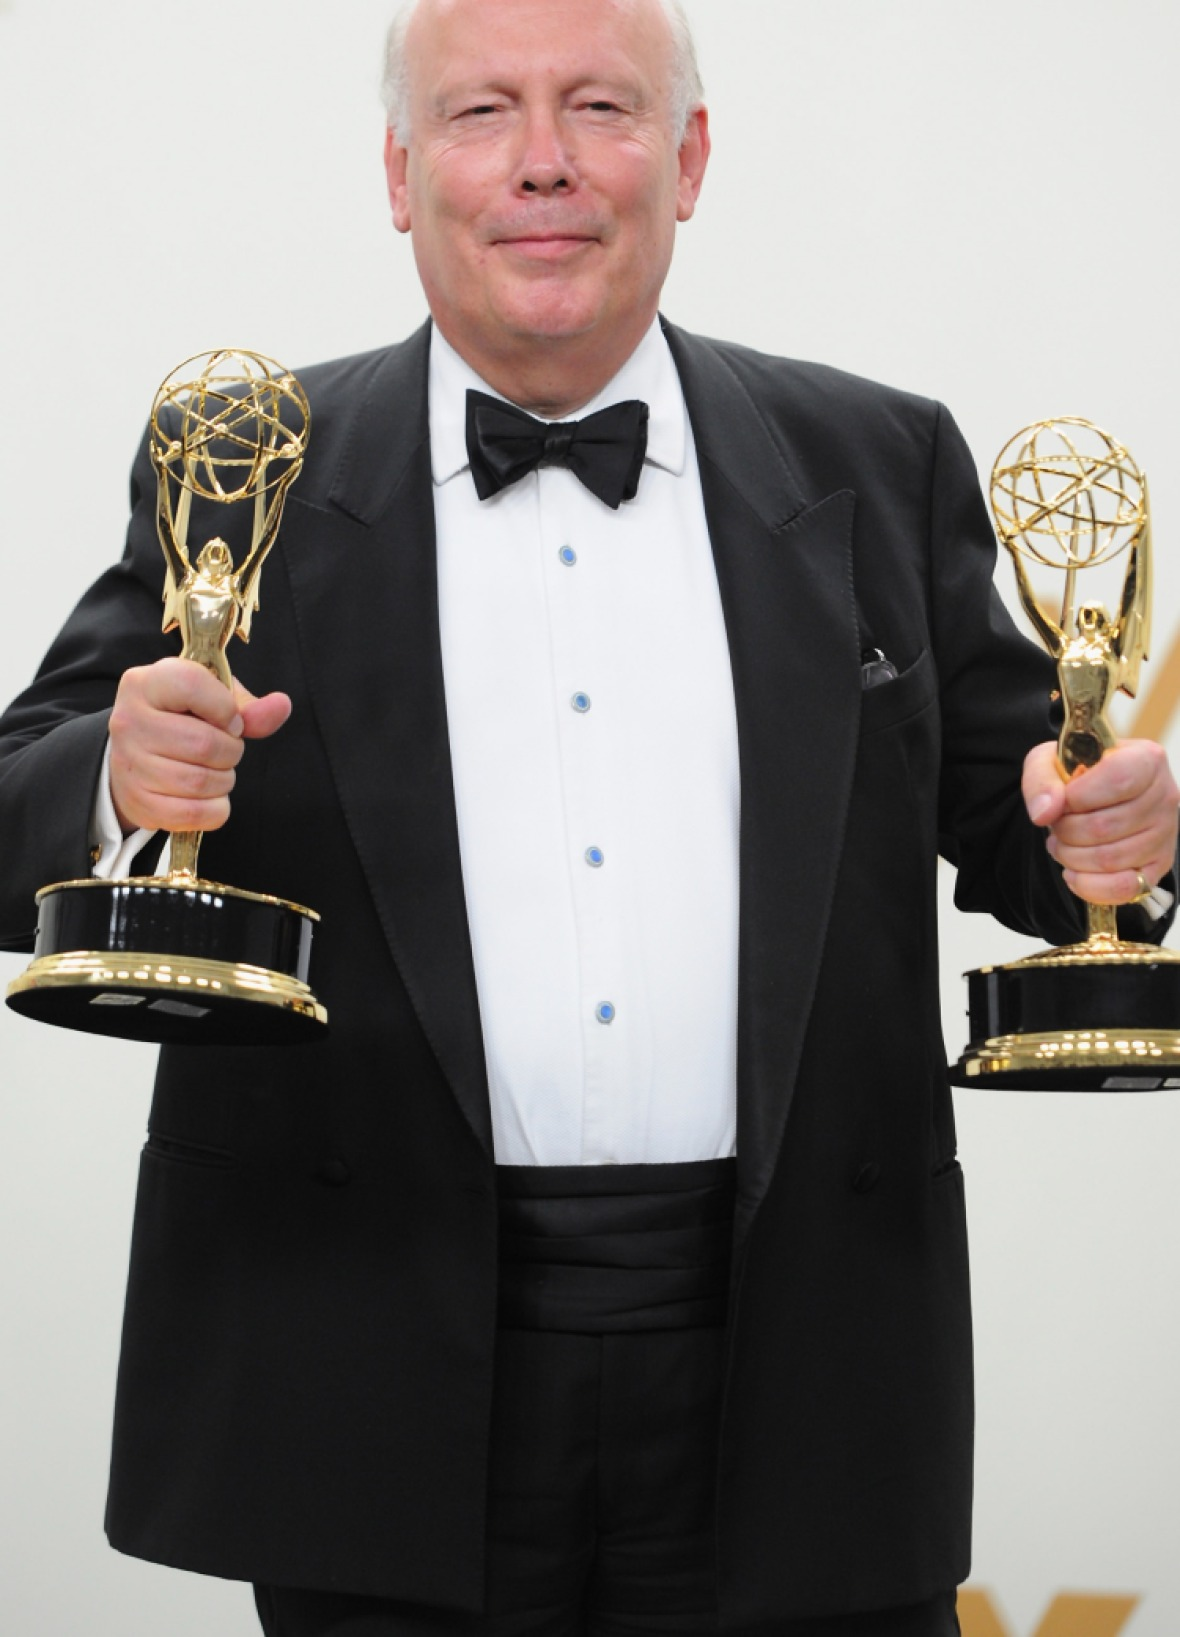 julian fellowes getty images